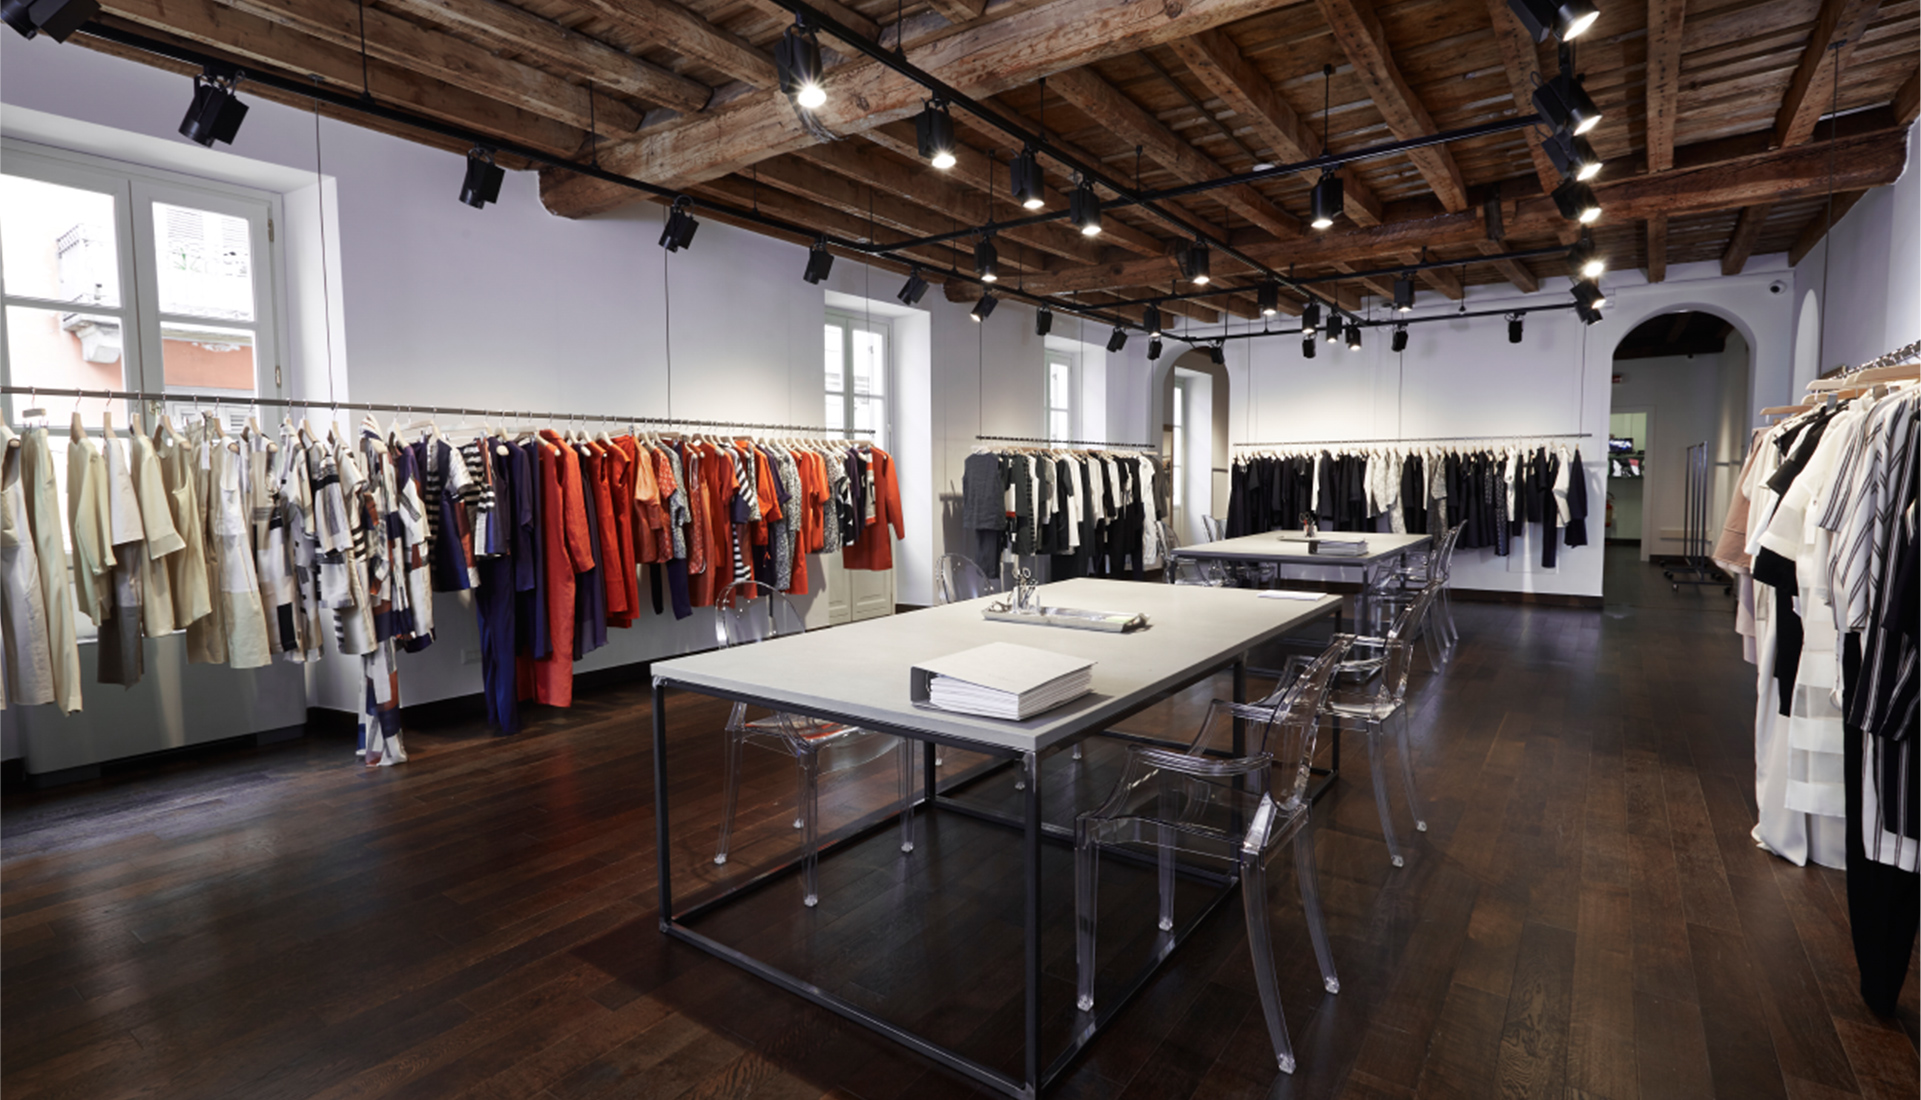 Showroom Antonelli Firenze in Via Tortona 21 - Milano, immagine 3